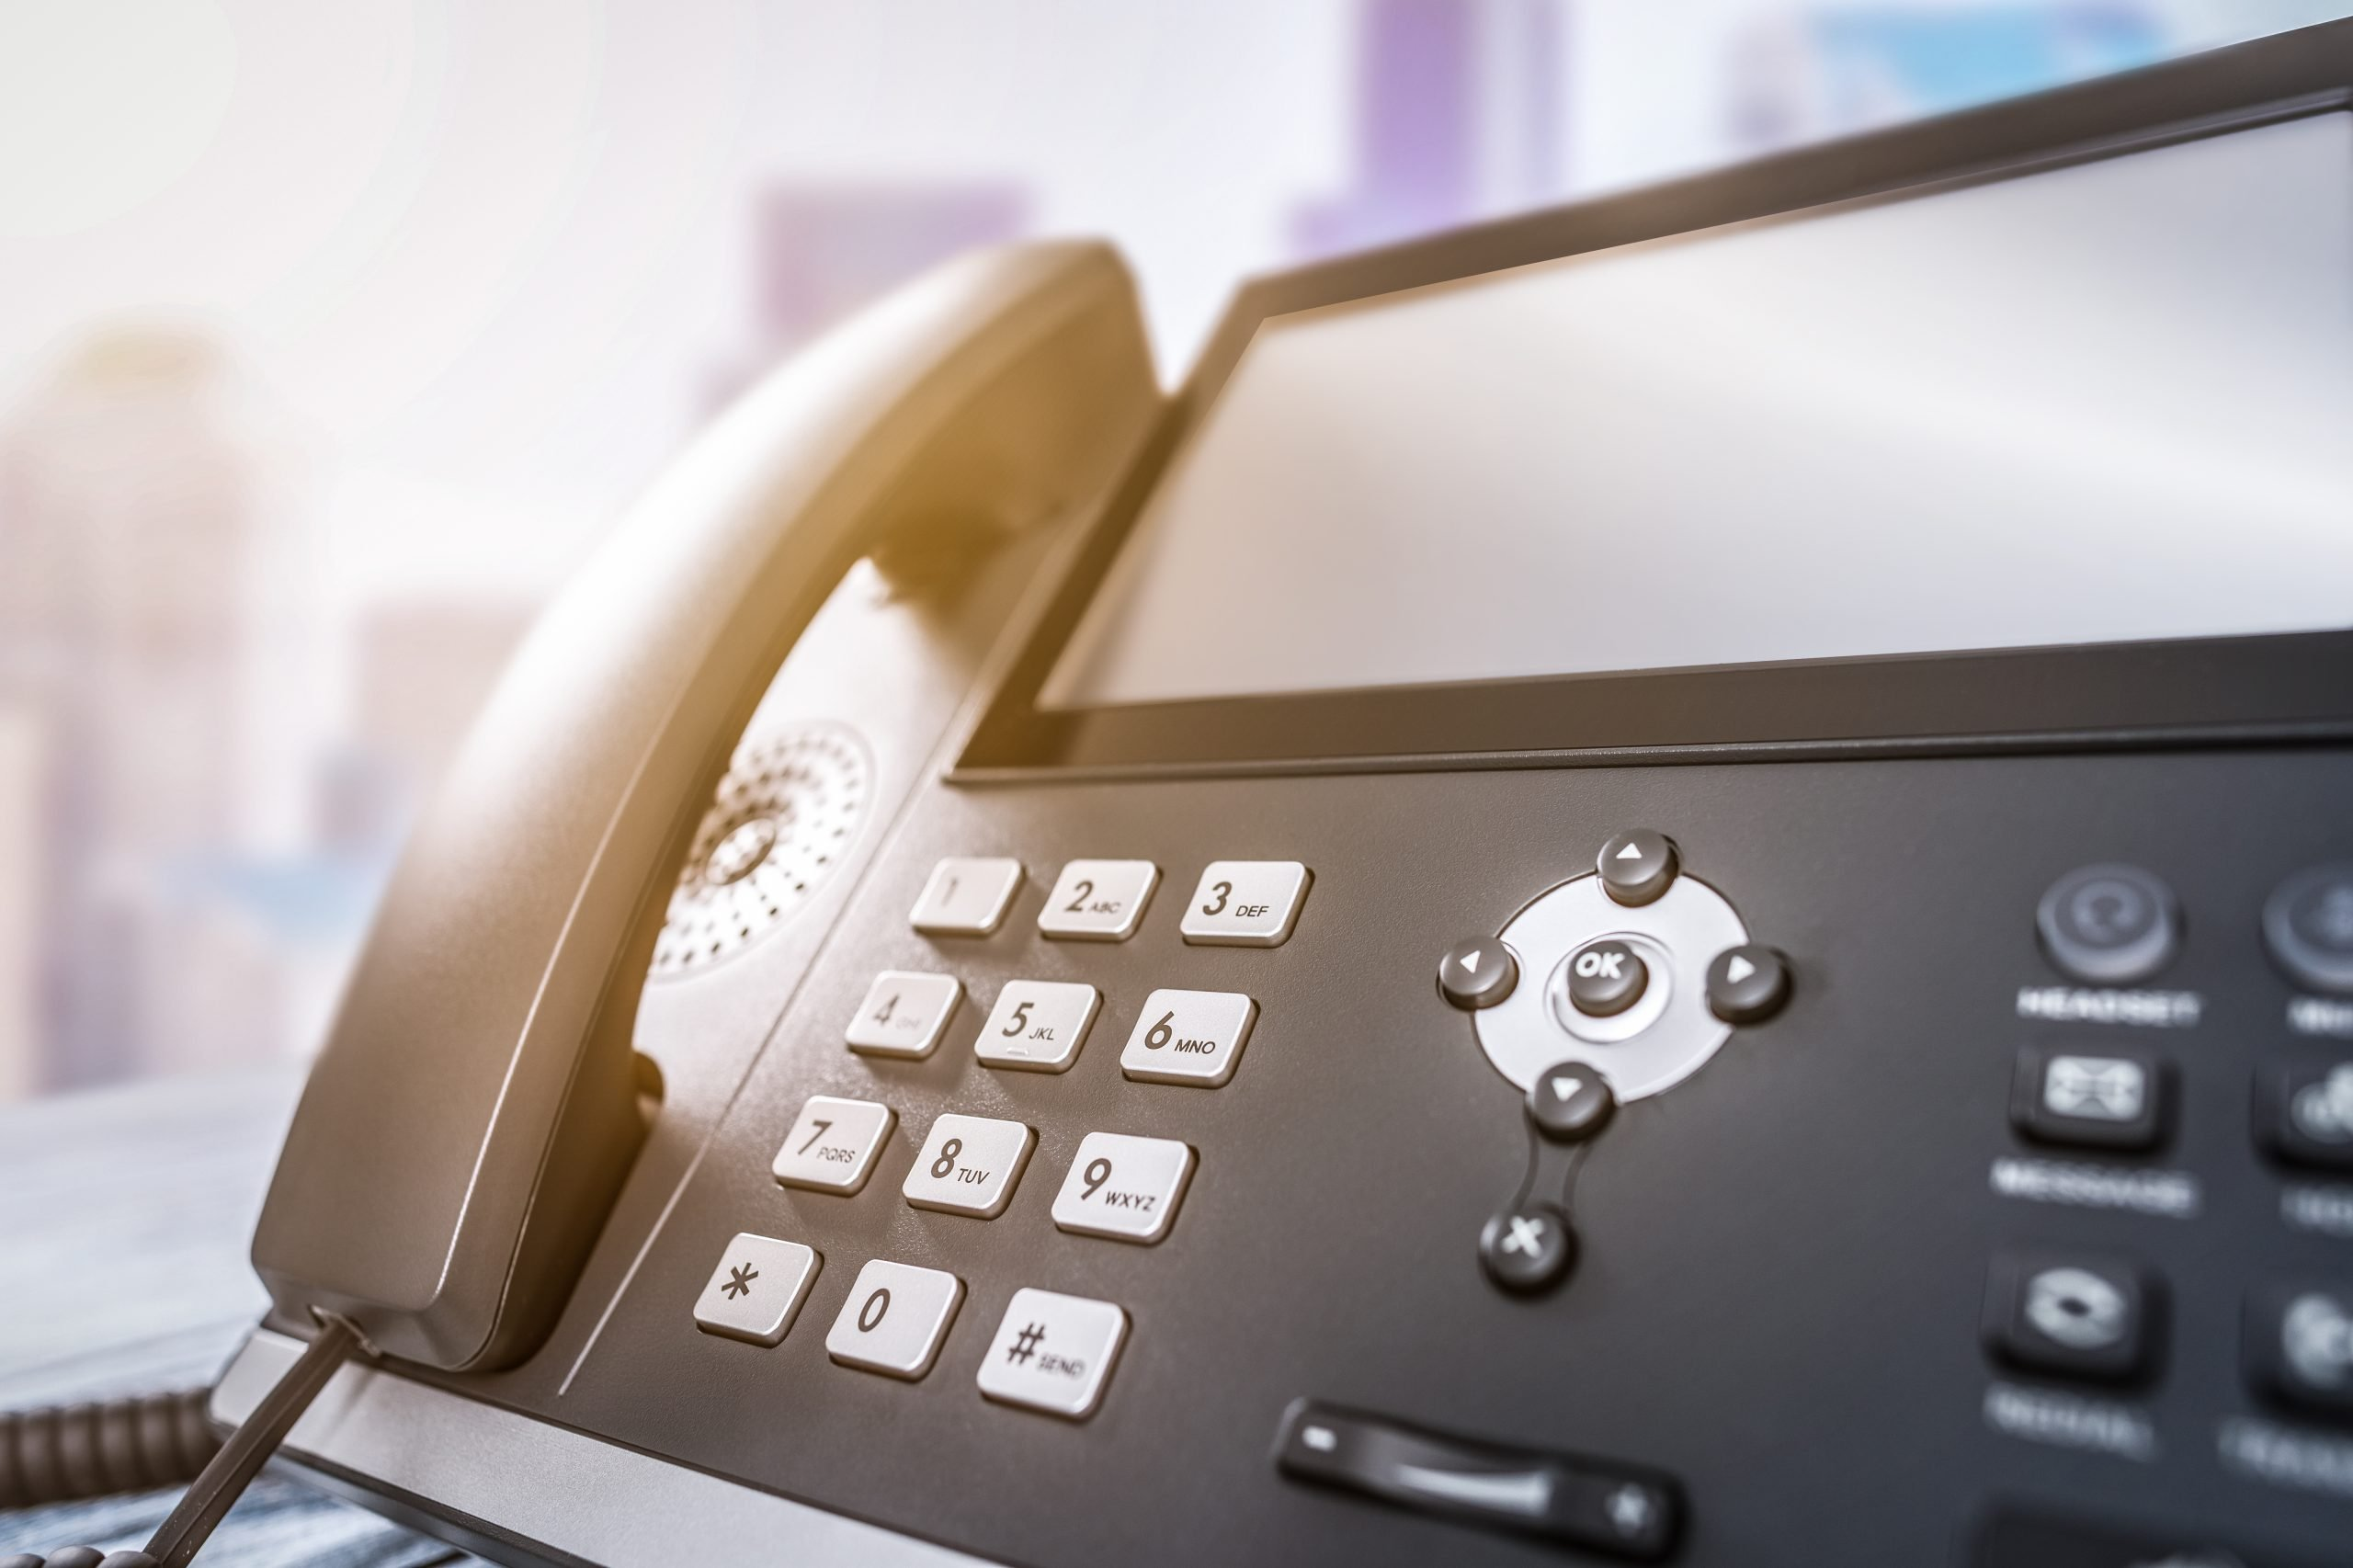 voip phone systems image of business phone